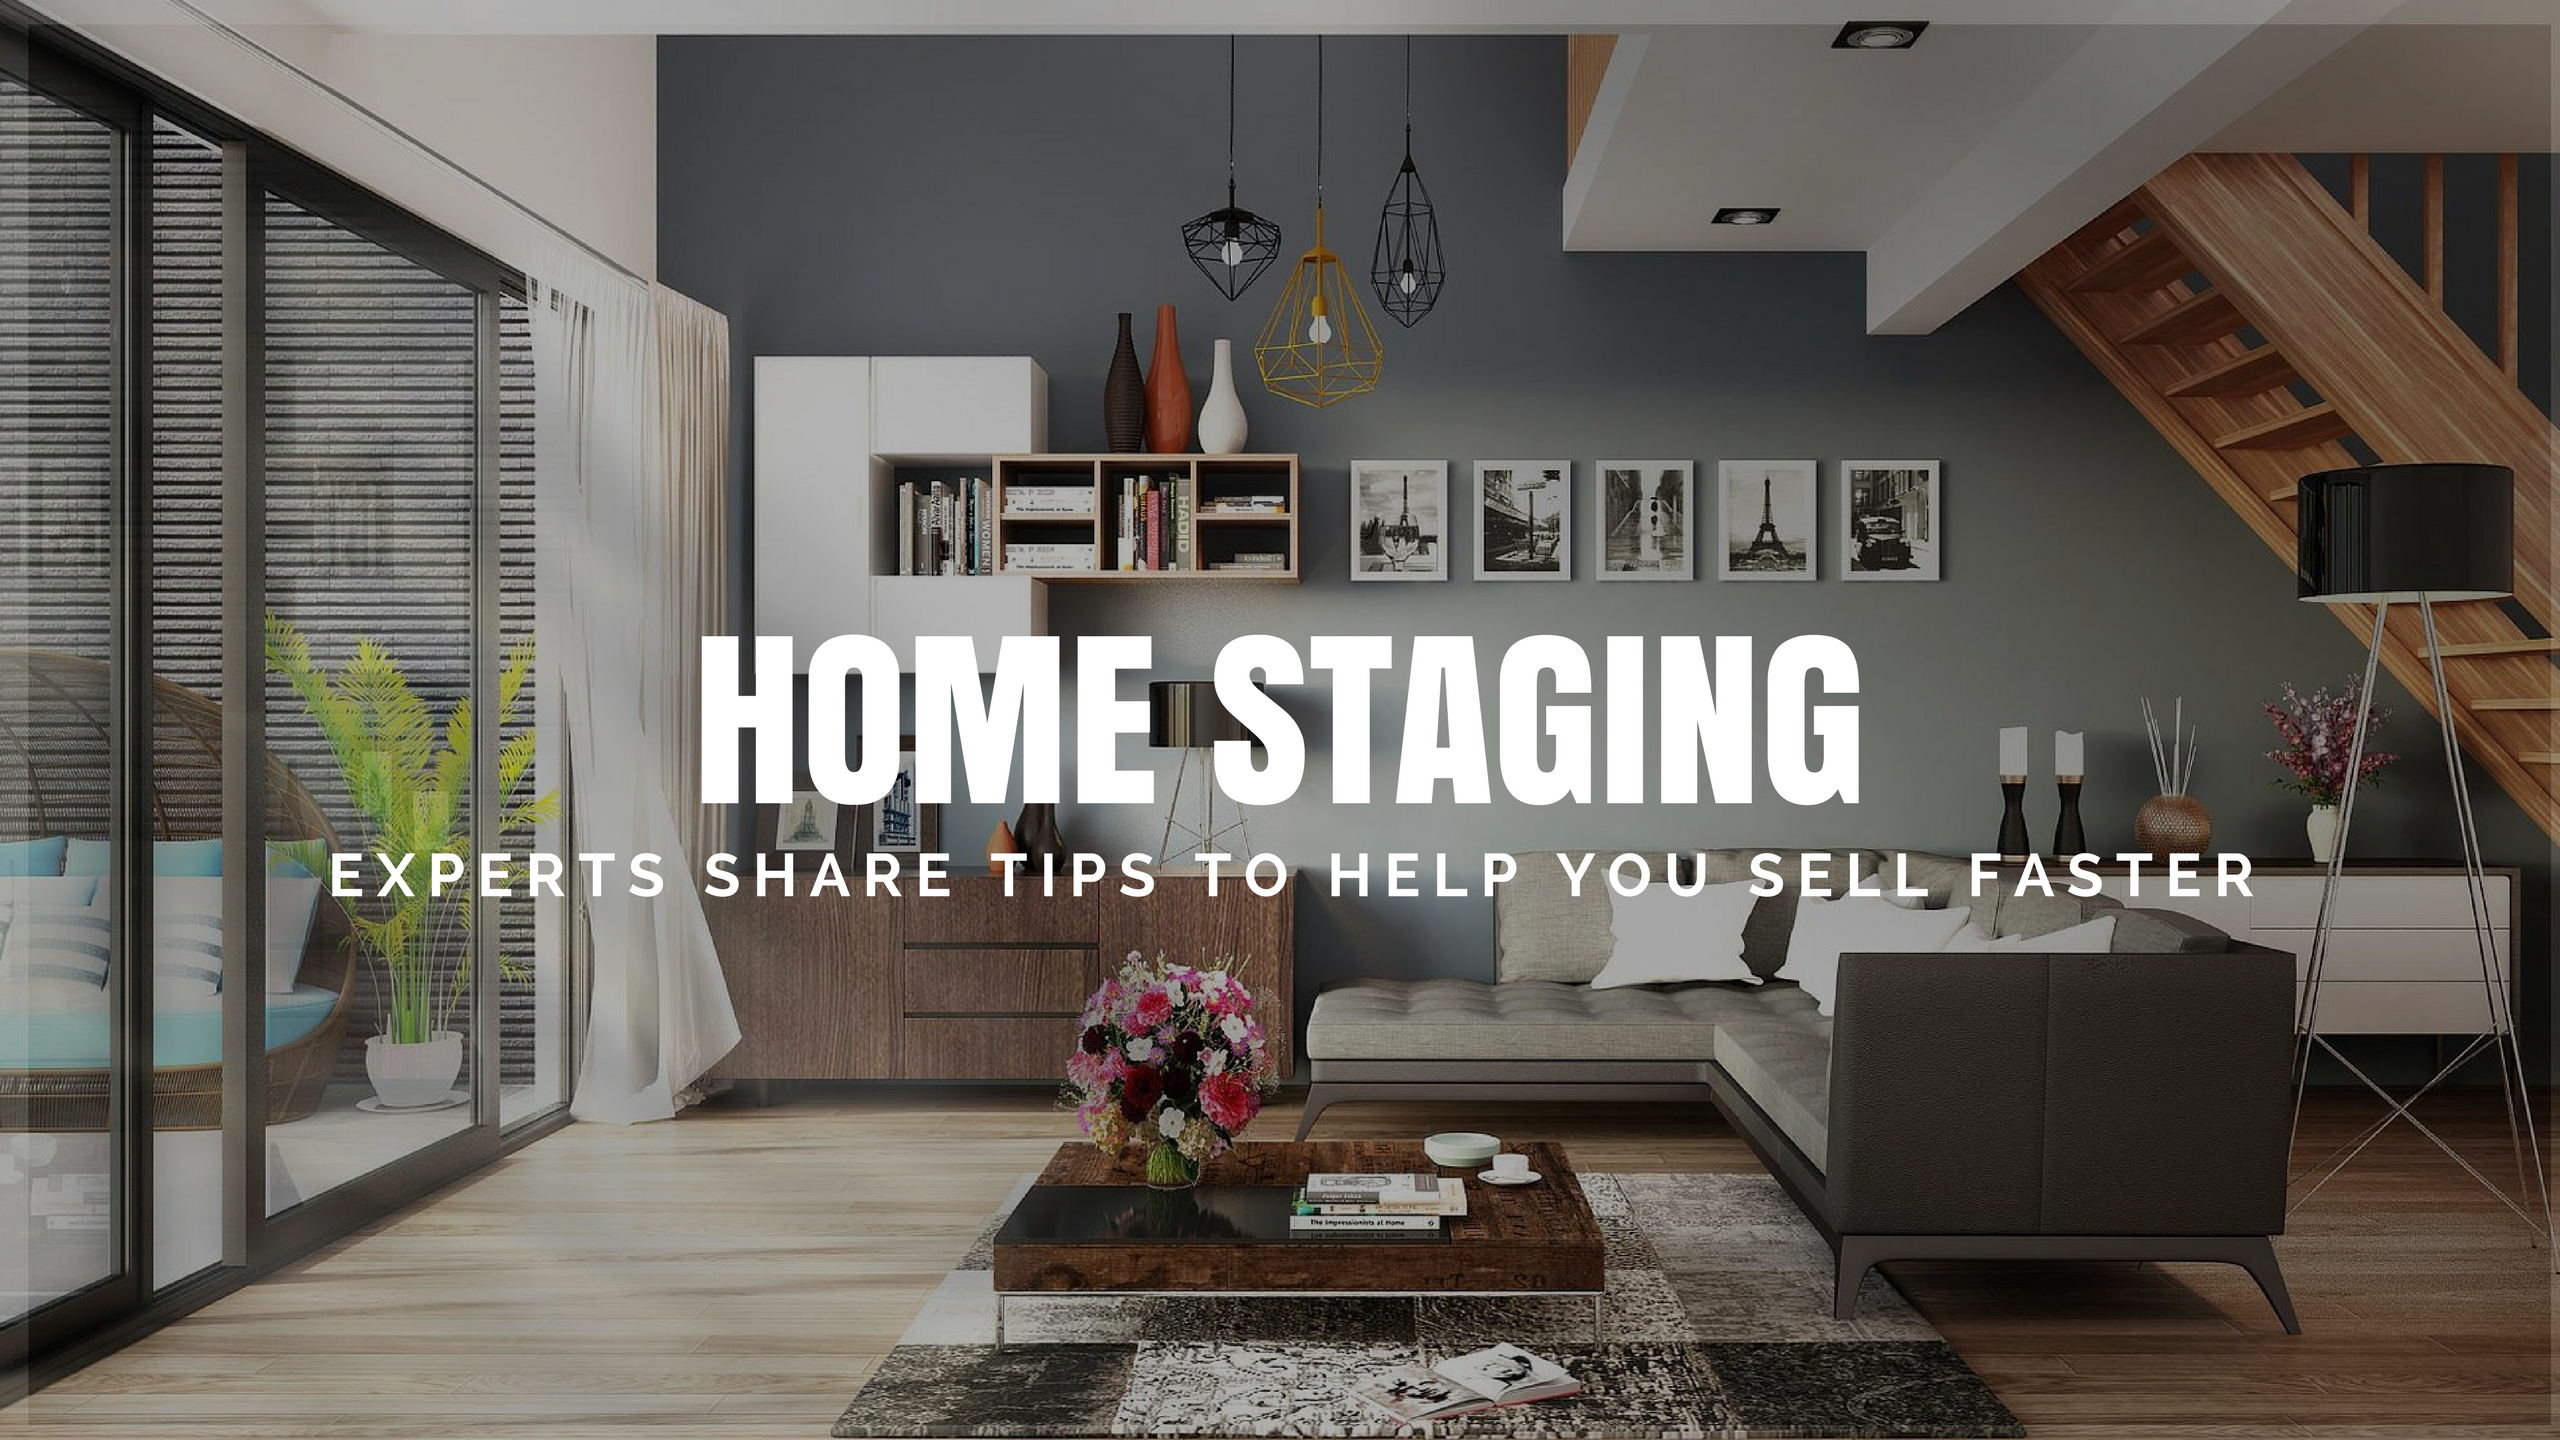 Home Staging Tips - Industry Experts Share Staging Advice on kitchen tables ideas, kitchen design ideas, kitchen marketing ideas, kitchen seating ideas, hgtv kitchen ideas, kitchen setting ideas, kitchen photography ideas, kitchen accessory ideas, kitchen set ideas, kitchen renovations ideas, kitchen declutter ideas, kitchen electrical ideas, kitchen configuration ideas, kitchen signs ideas, small kitchen decorating ideas, kitchen facelift ideas, kitchen planning ideas, kitchen rehab ideas, wood ceiling kitchen ideas, kitchen furniture ideas,